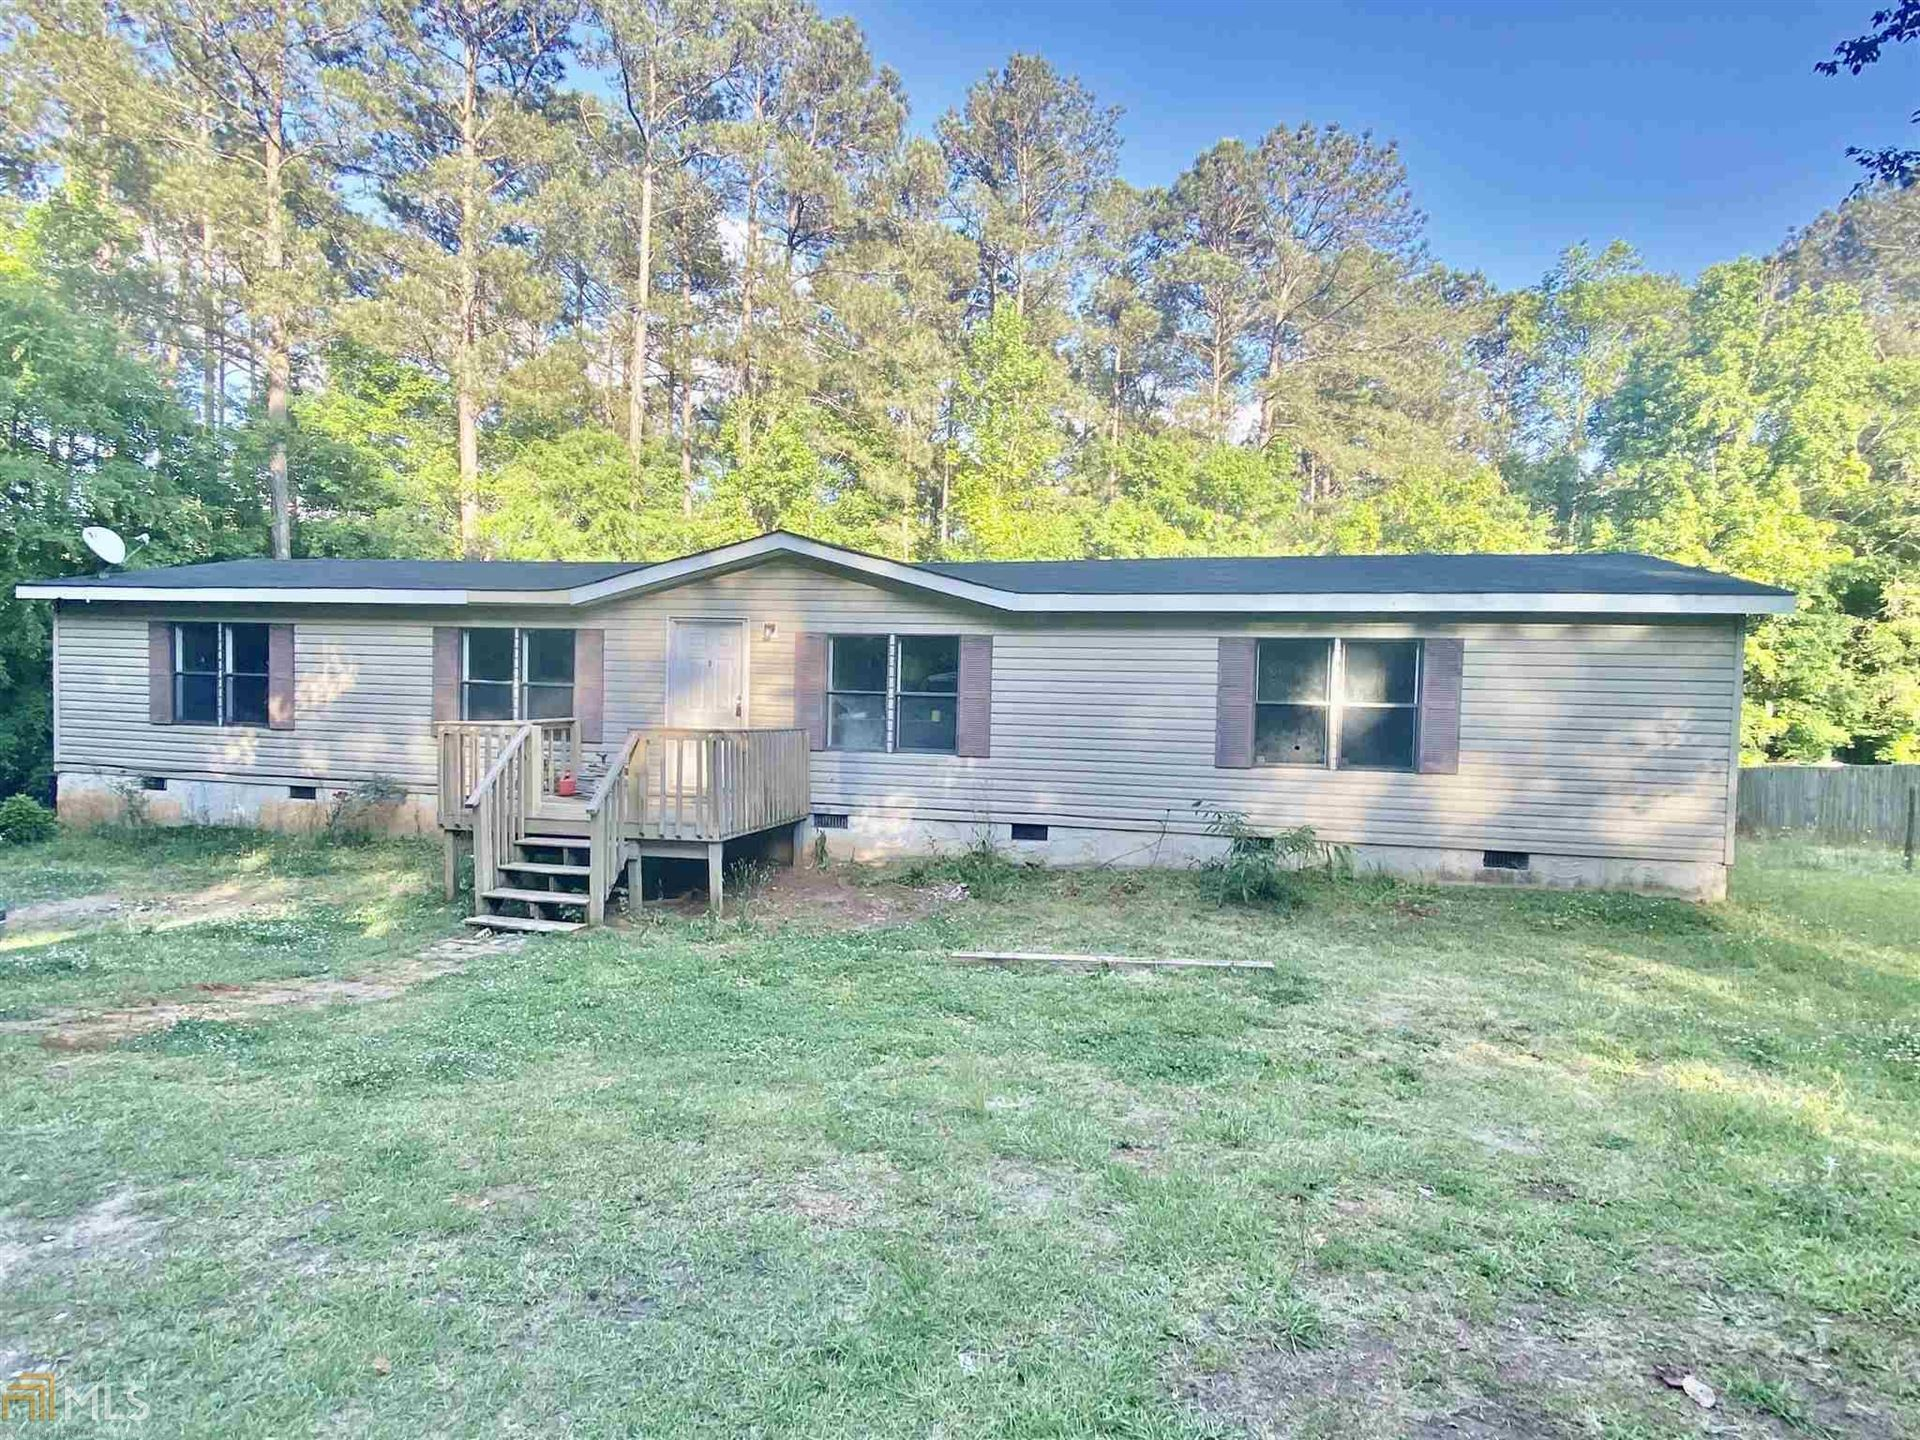 164 Hummingbird Dr, Monticello, GA 31064 - MLS#: 8972961